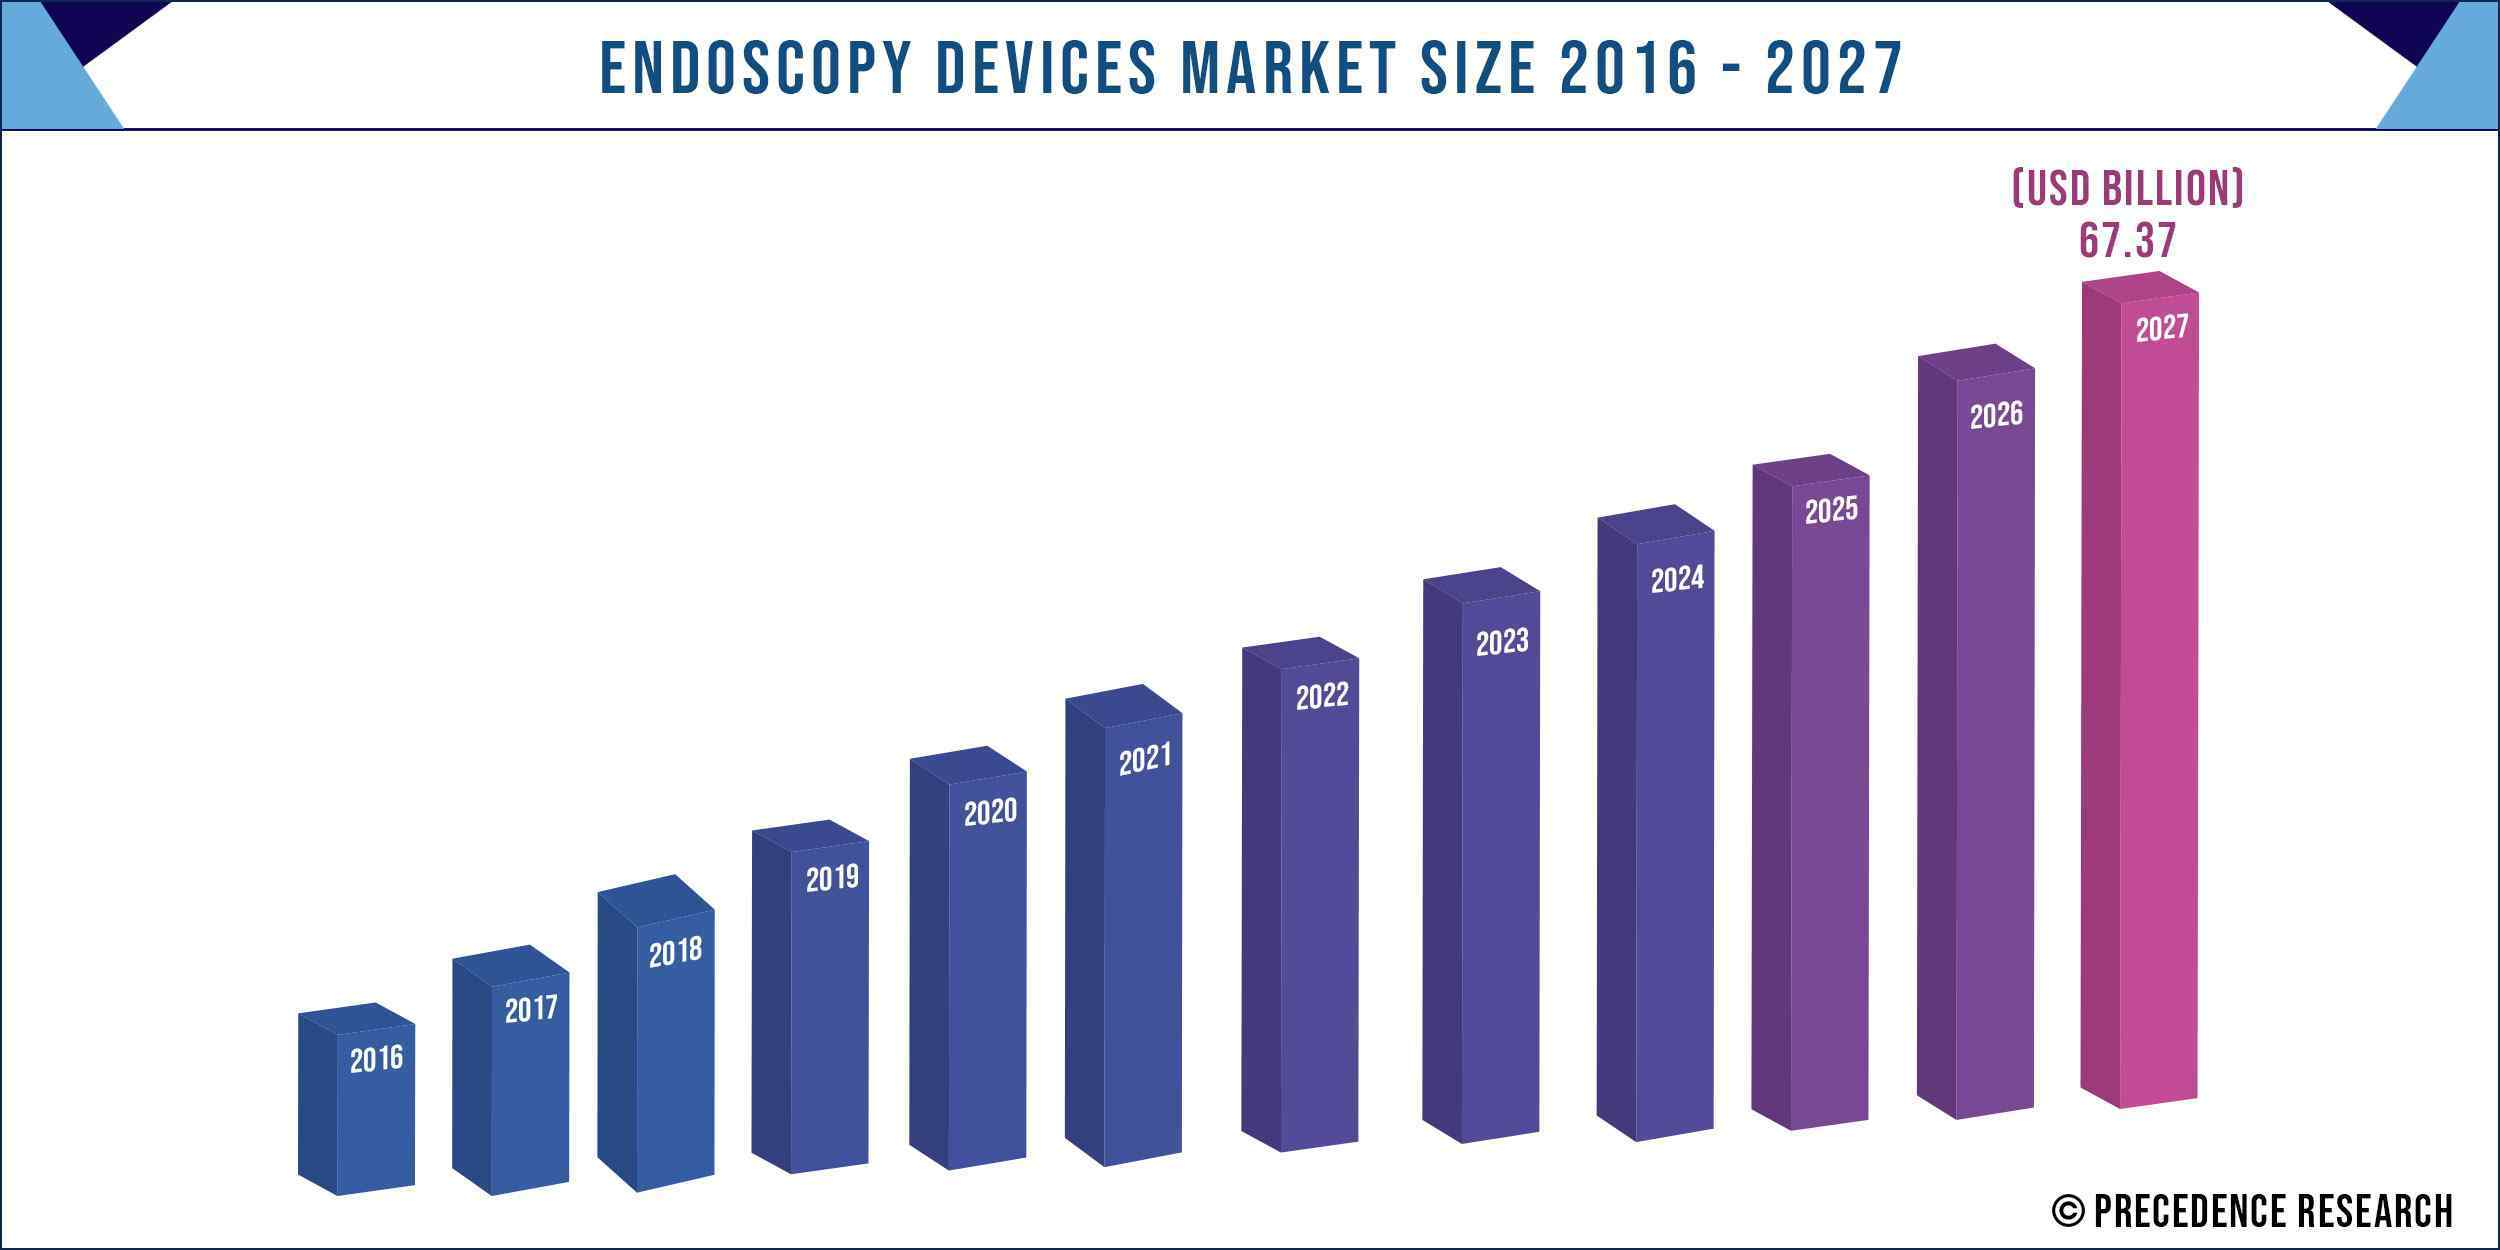 Endoscopy Devices Market Size 2016 to 2027